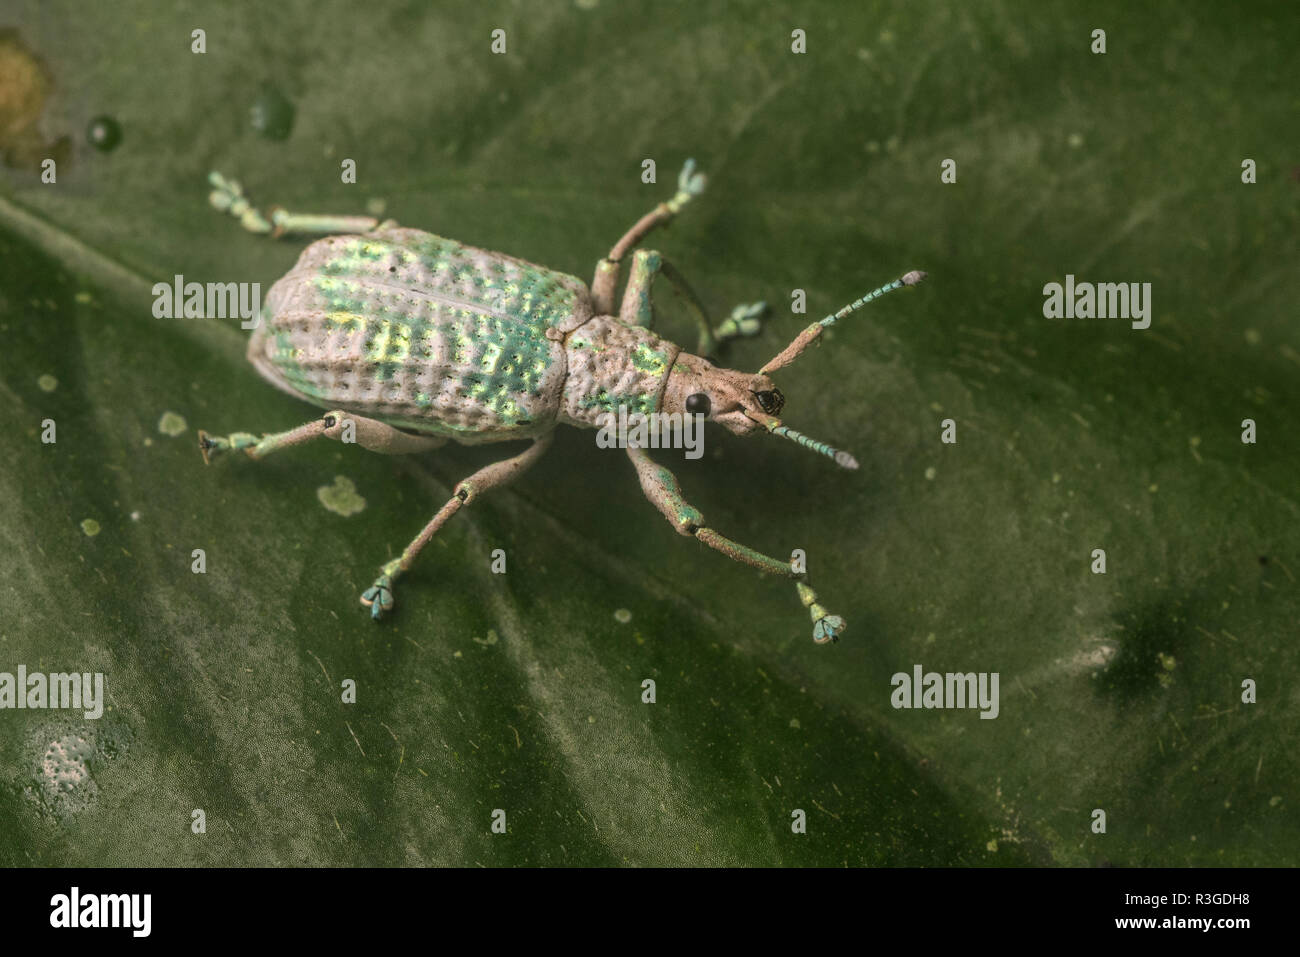 Broad-nosed Weevil Beetle (Entiminae) from Peru's Manu national park. - Stock Image